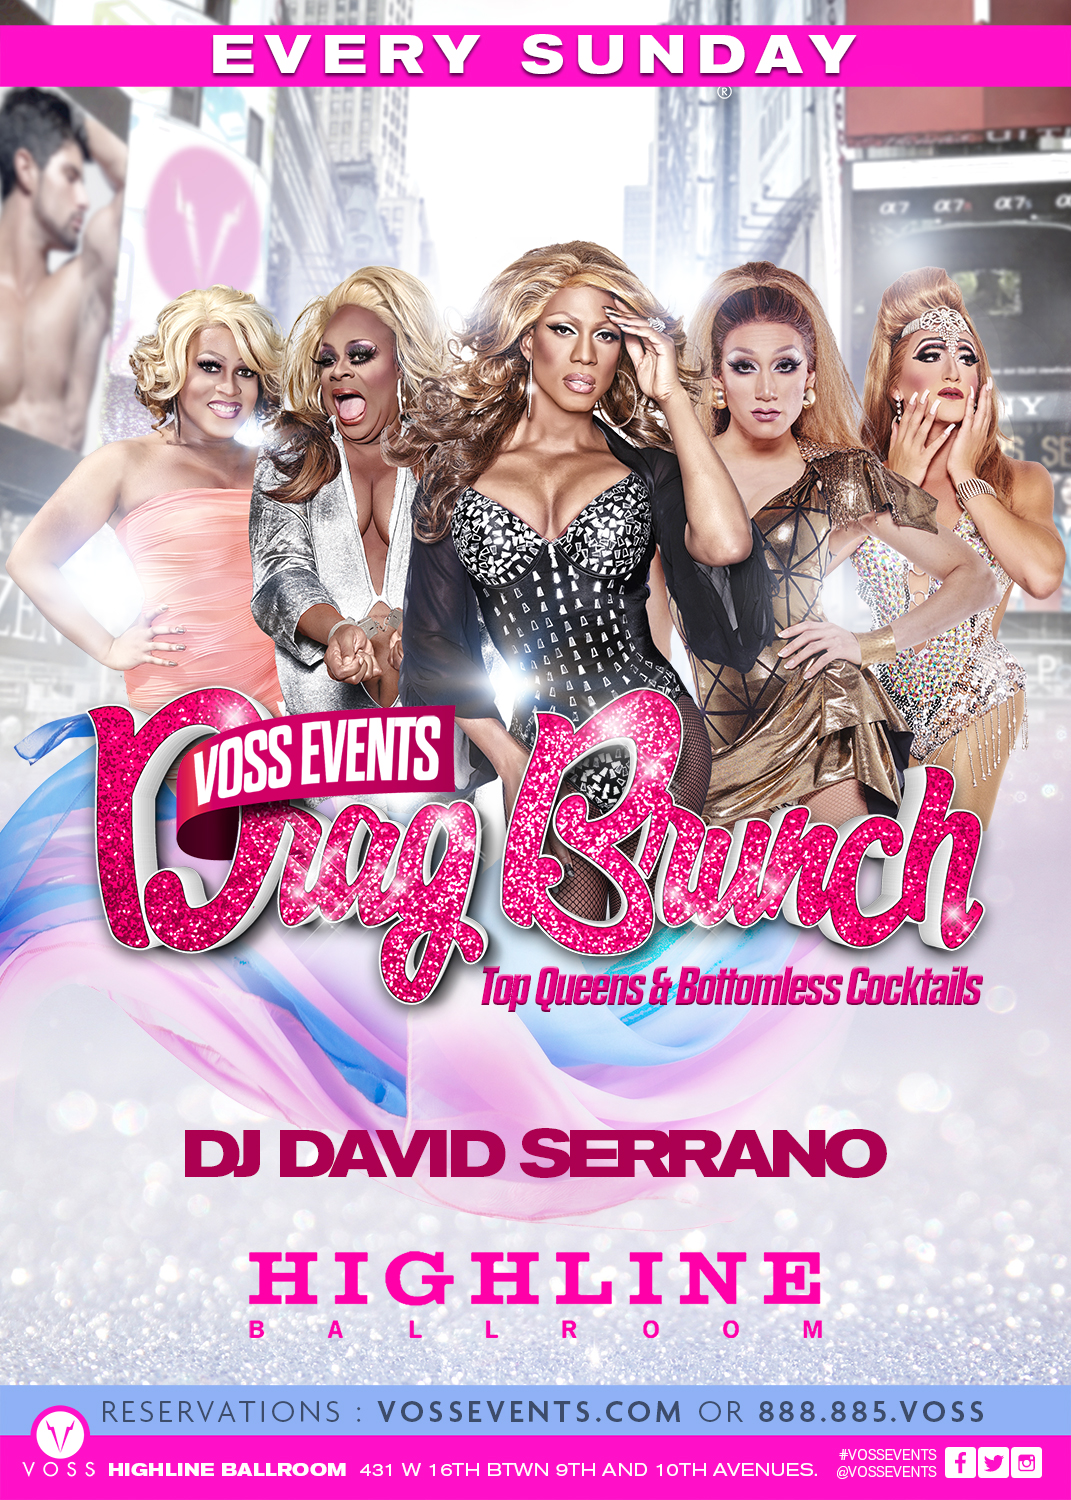 Sunday Drag Brunch by Voss Events